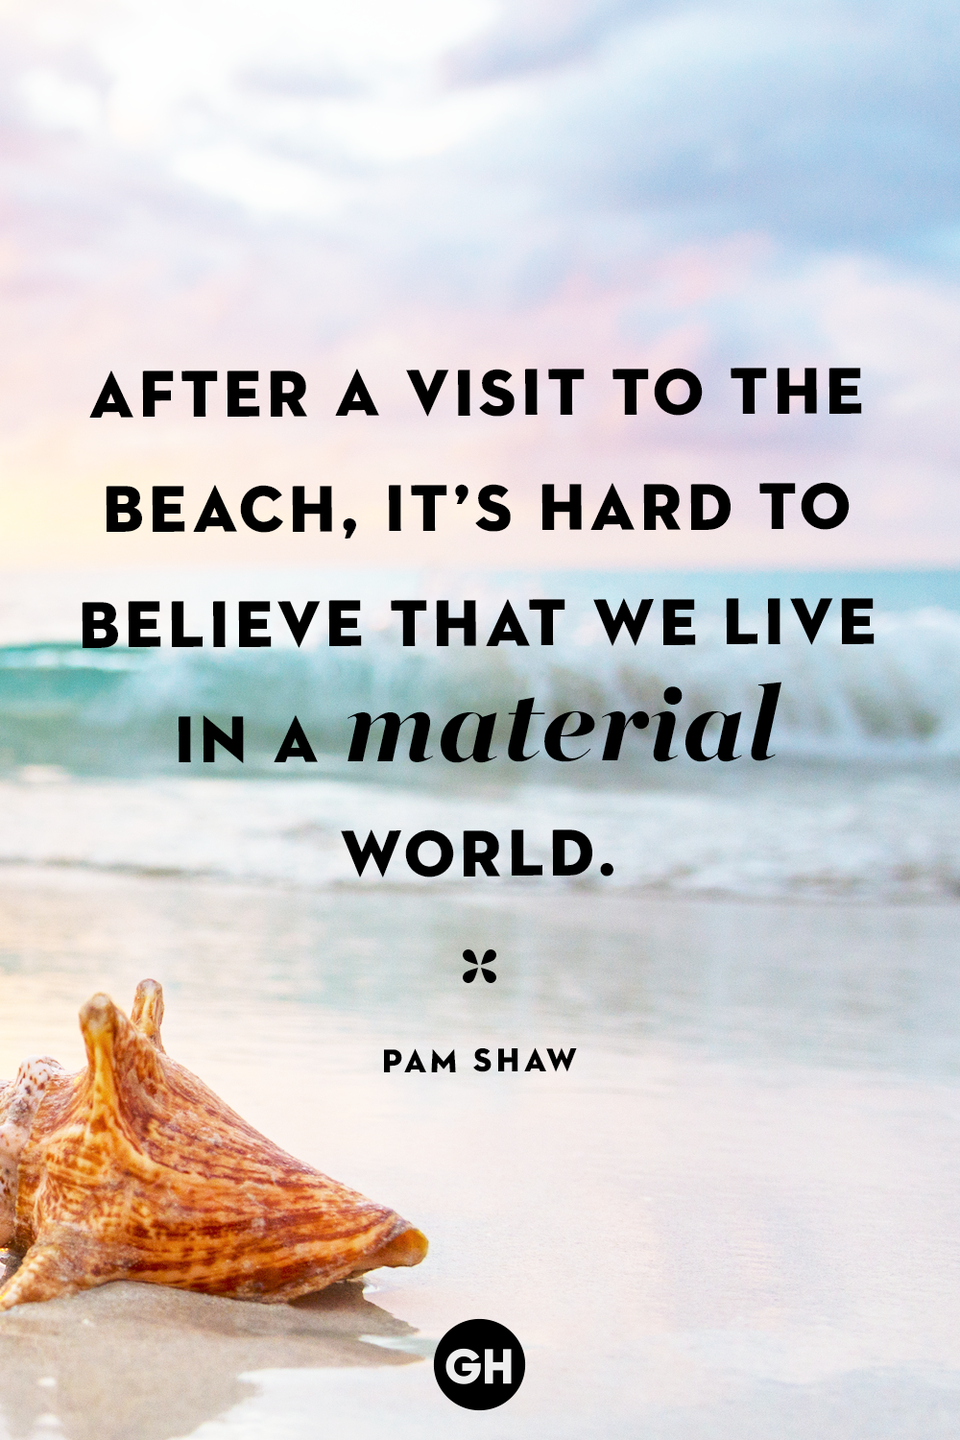 <p>After a visit to the beach, it's hard to believe that we live in a material world.</p>